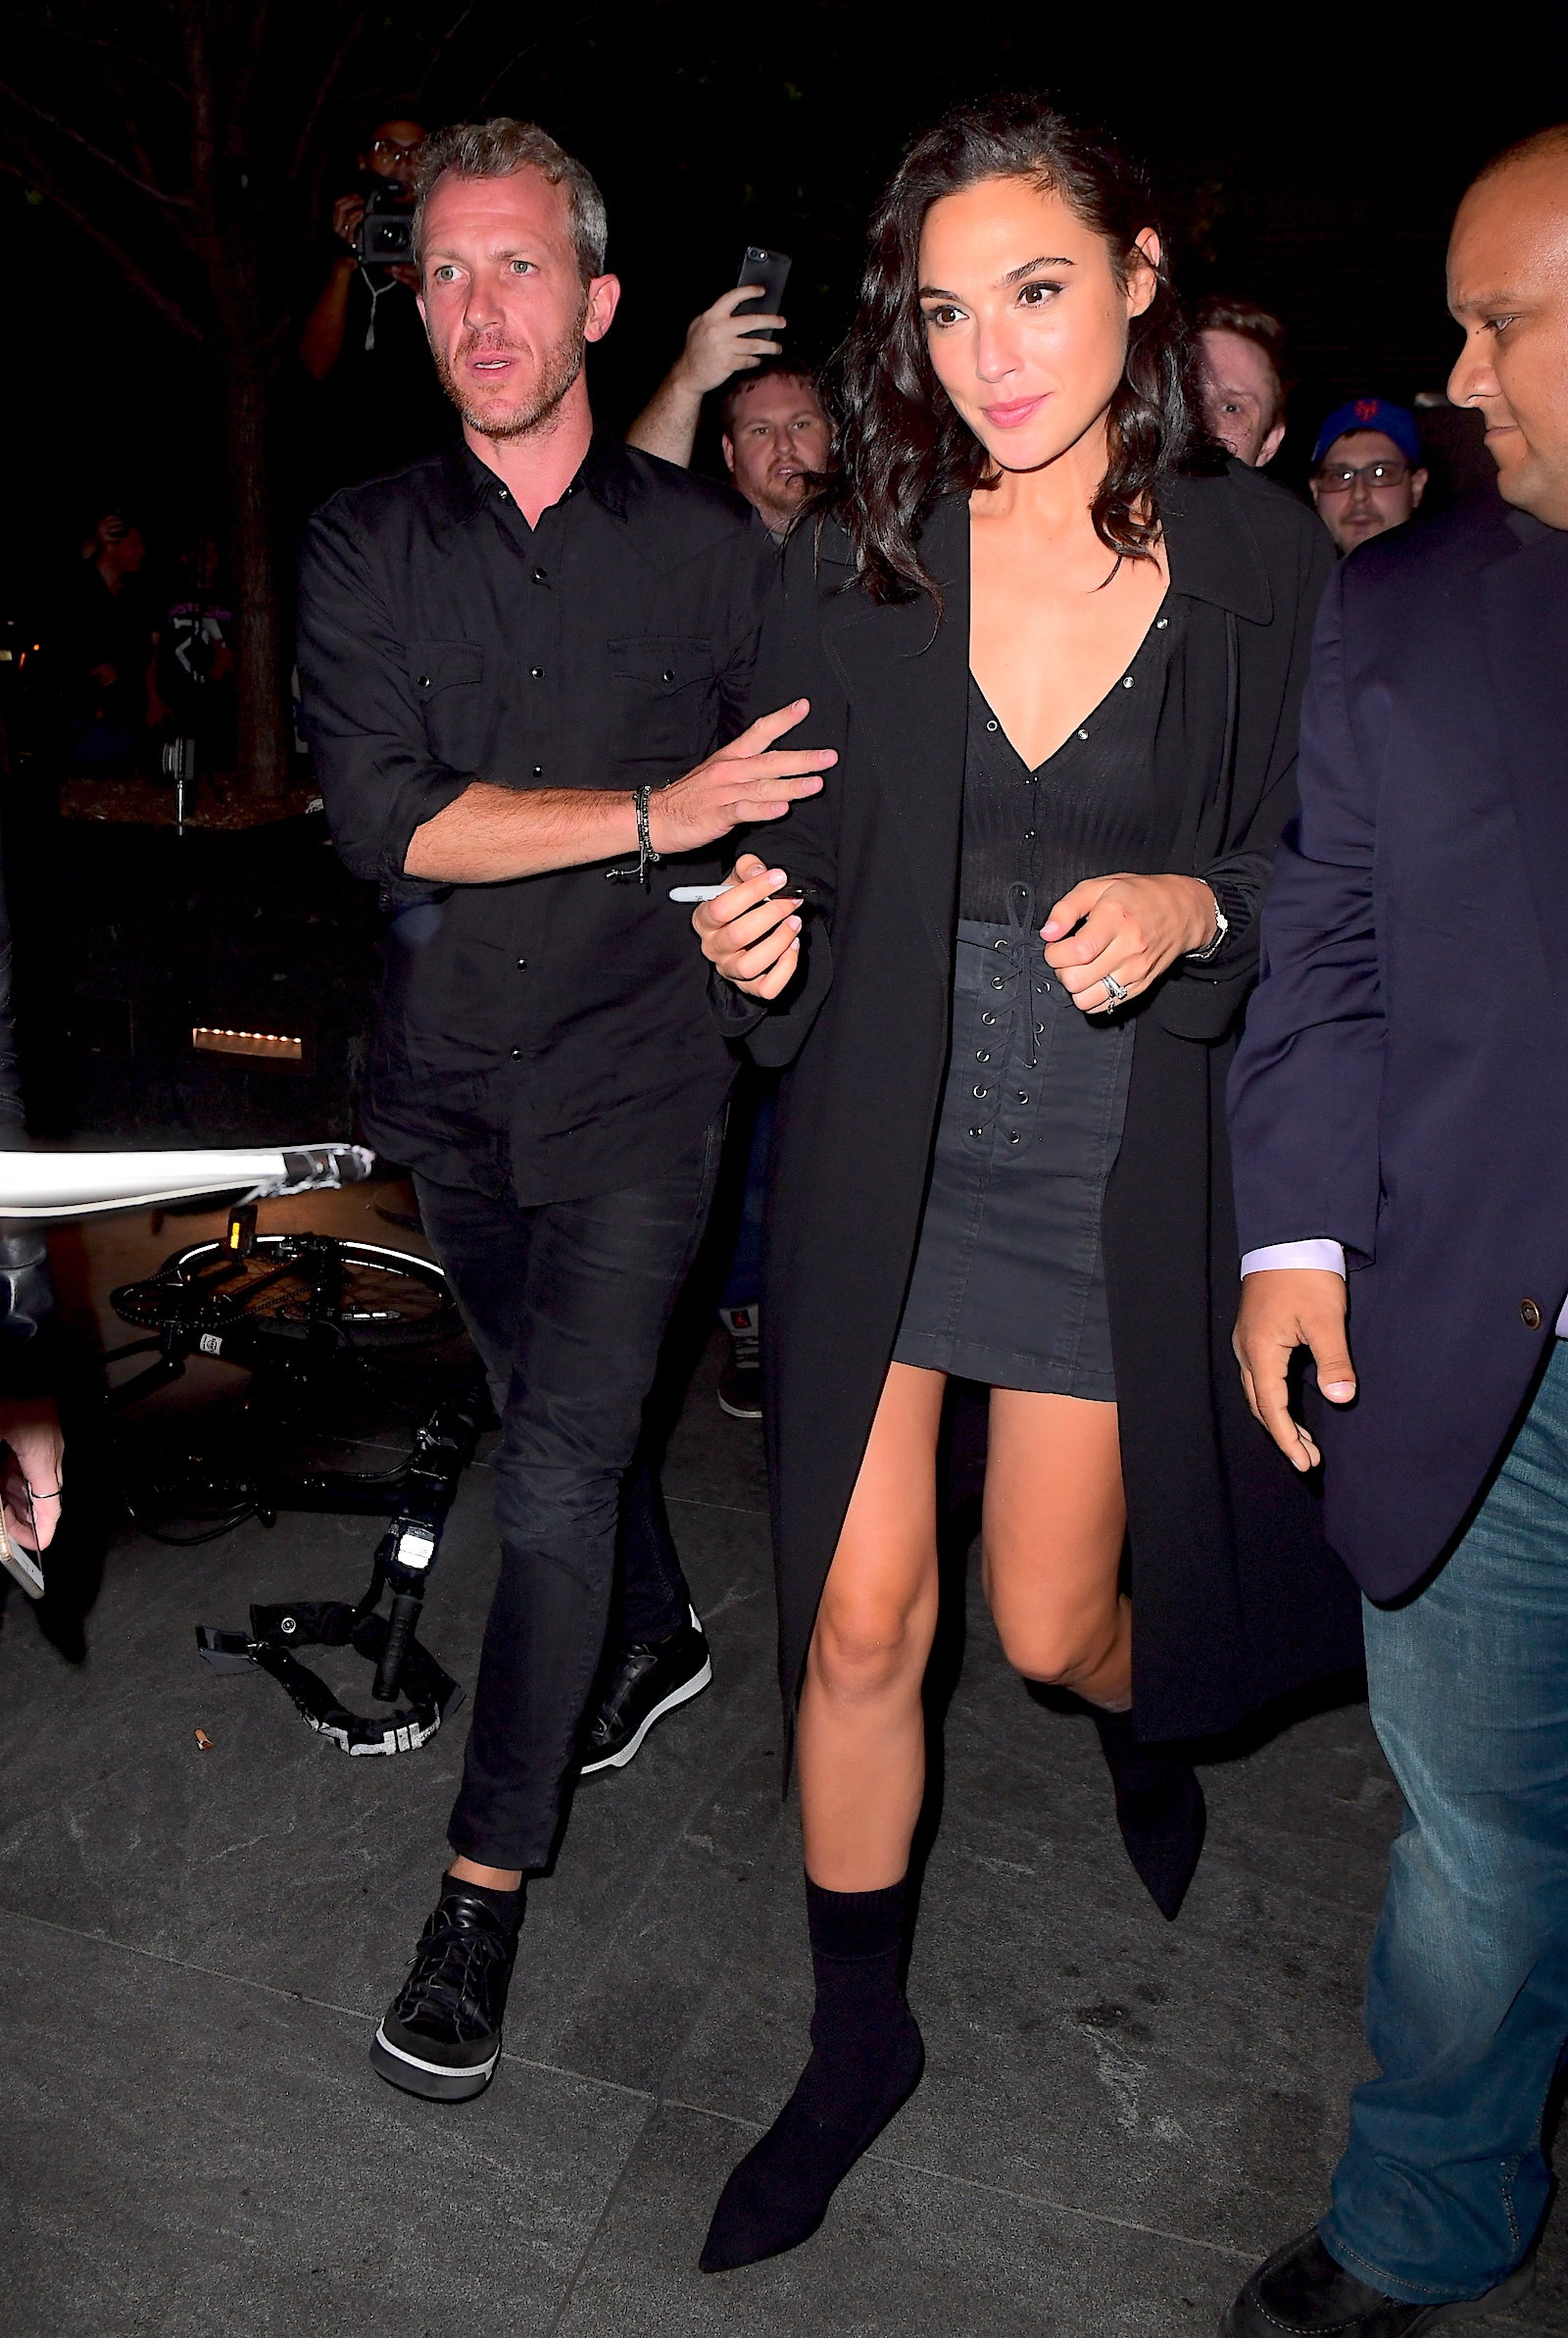 Gal Gadot and husband attend SNL after party 10/08/17